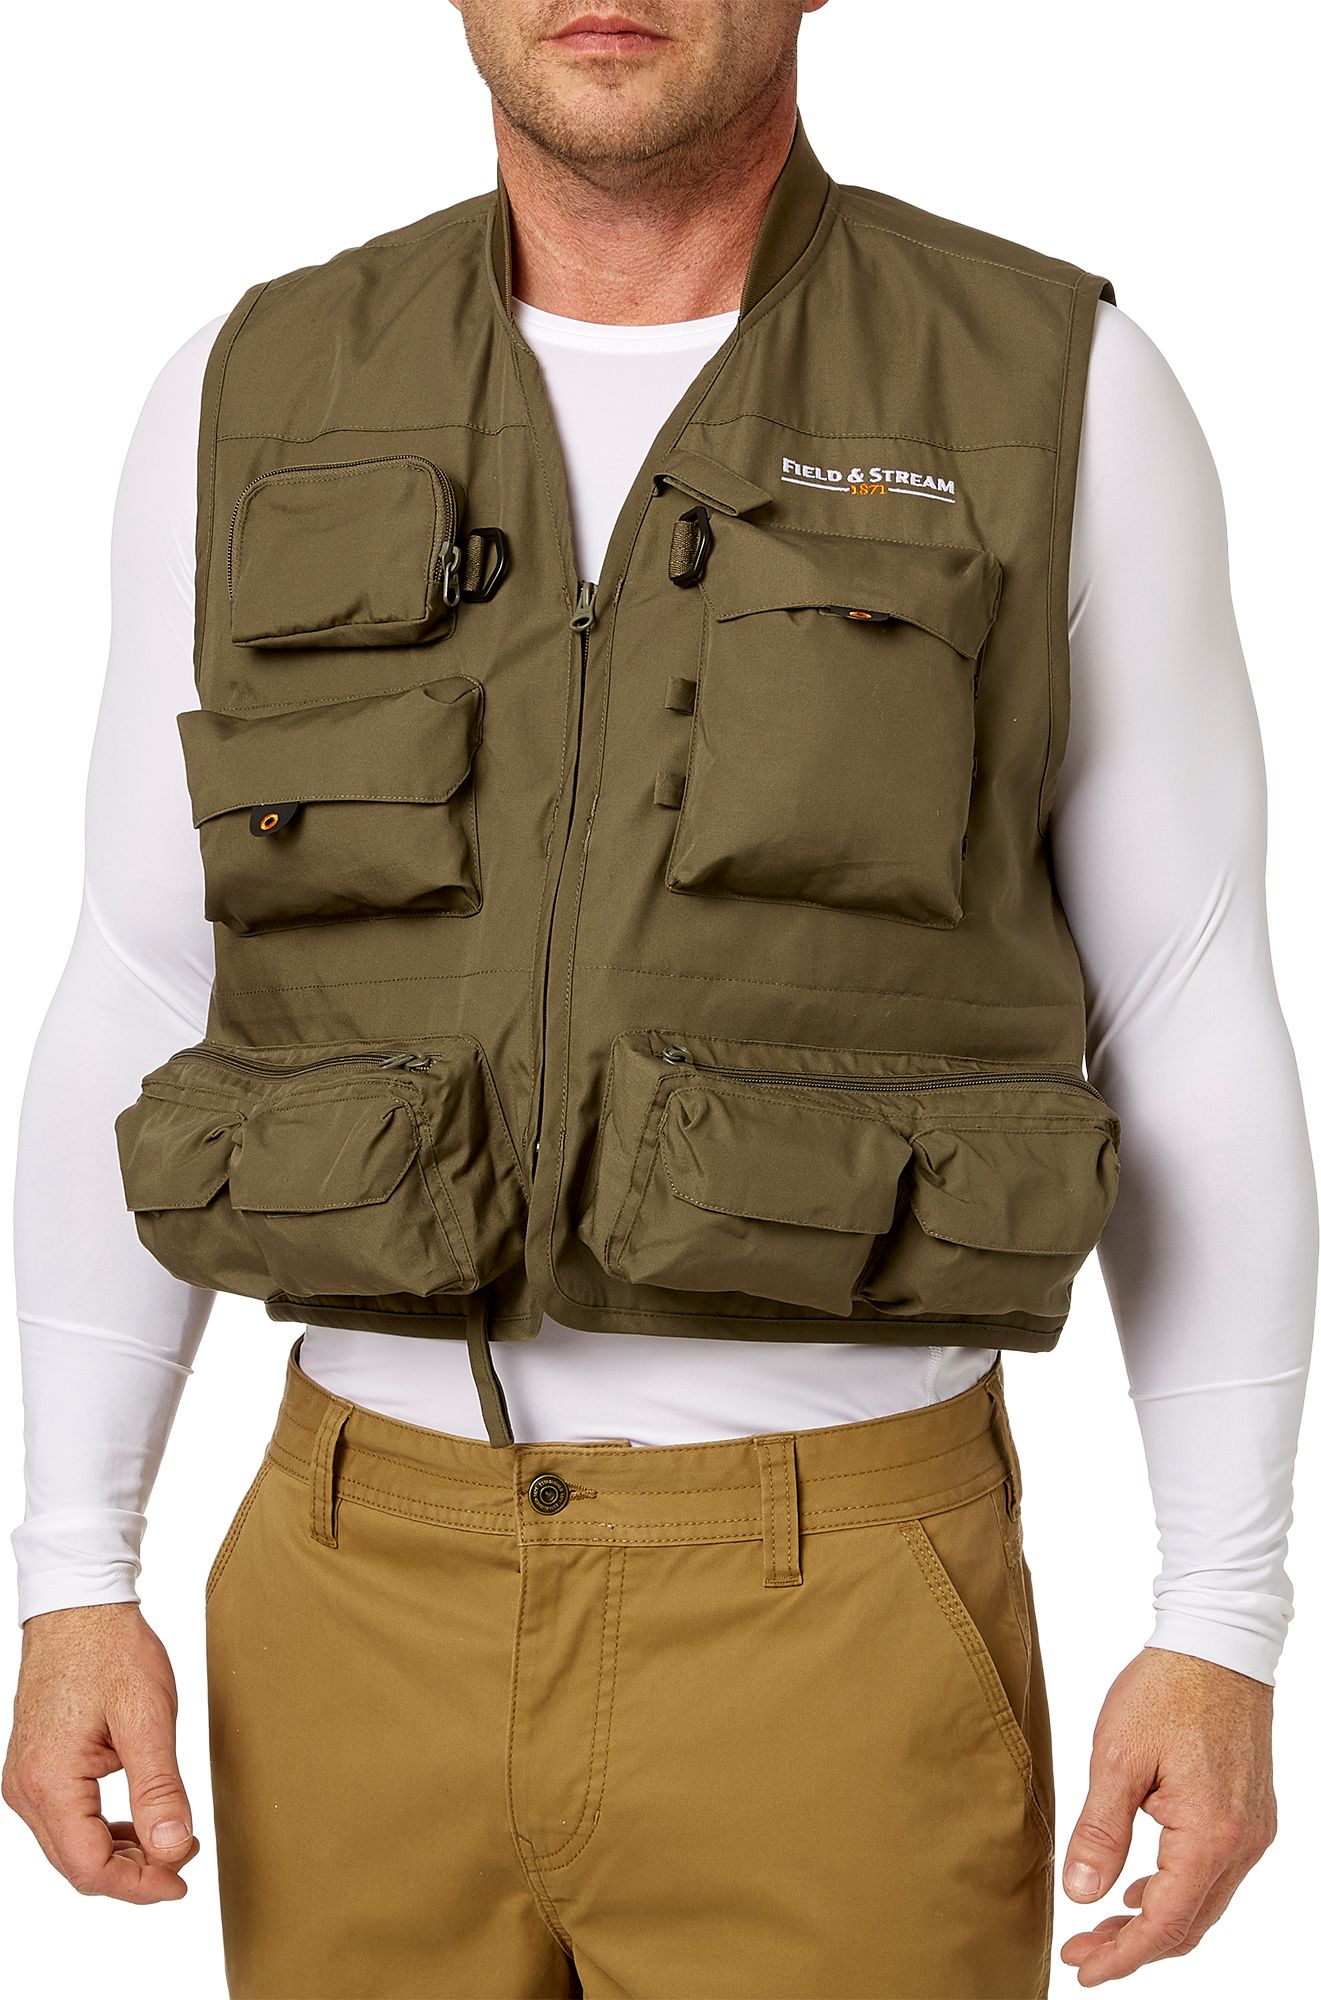 Field & Stream Men's Multi Pocket Fishing Vest | DICK'S Sporting Goods